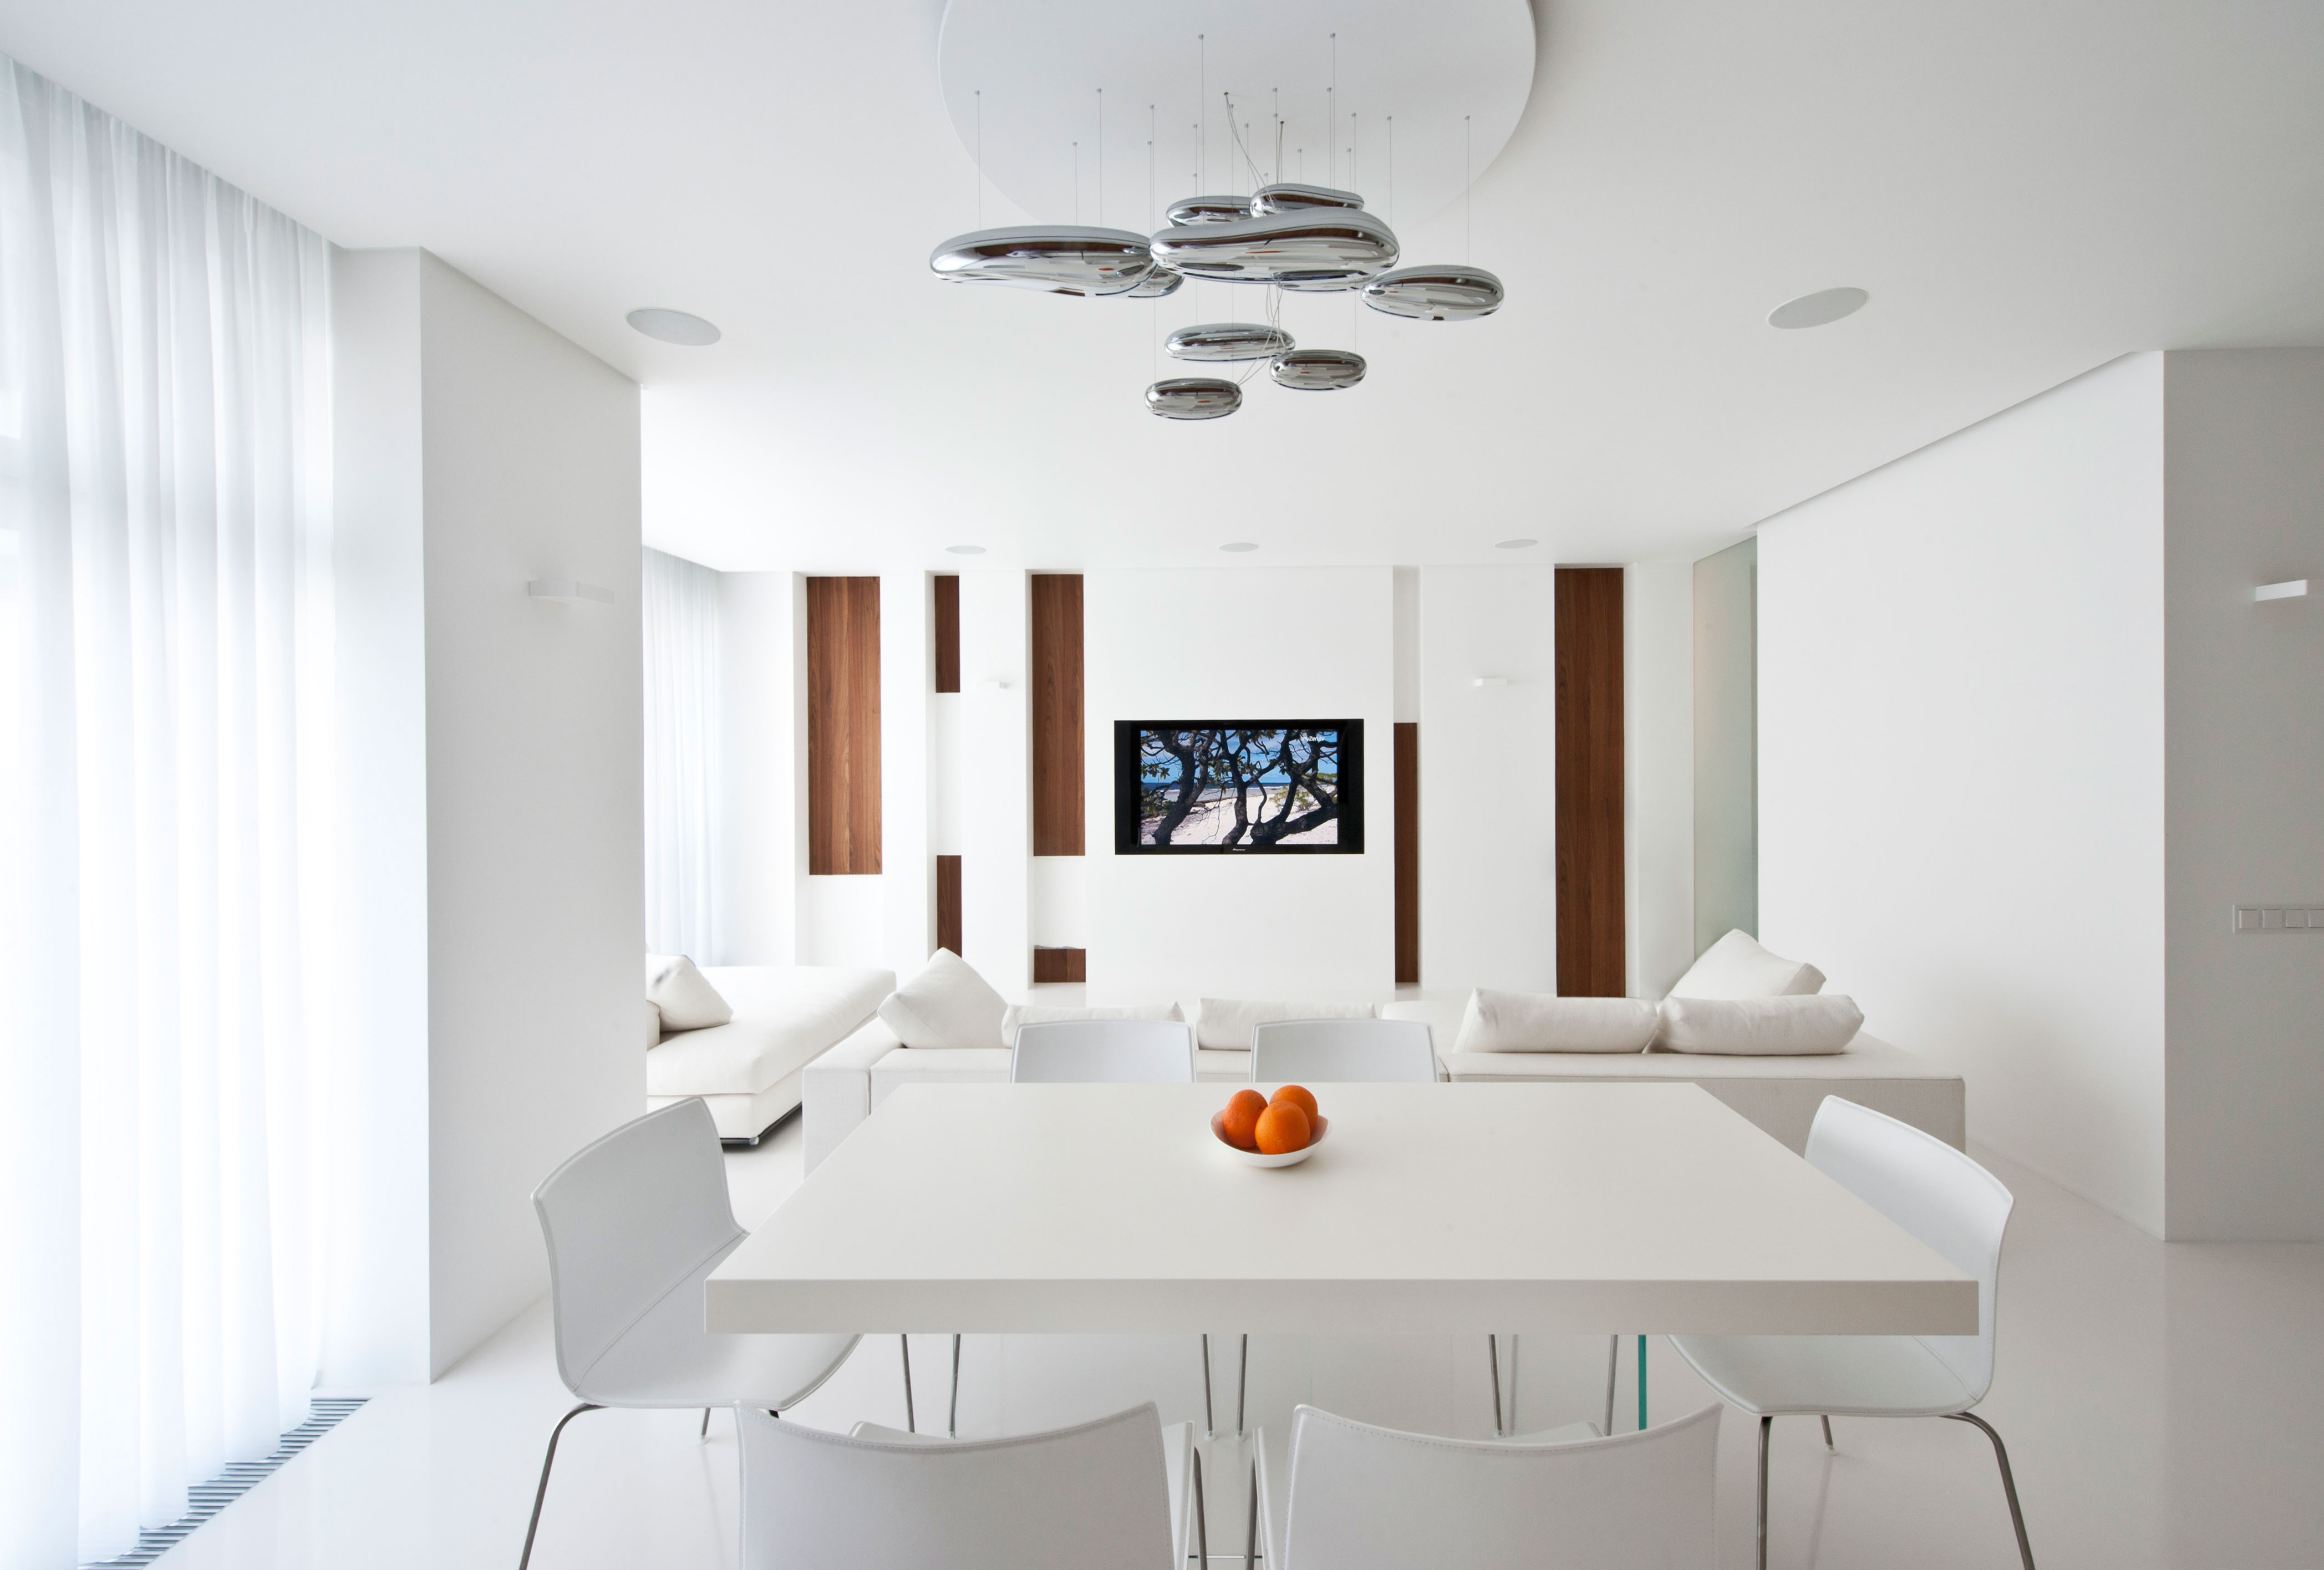 AIADO Master of Architecture with an Emphasis in Interior